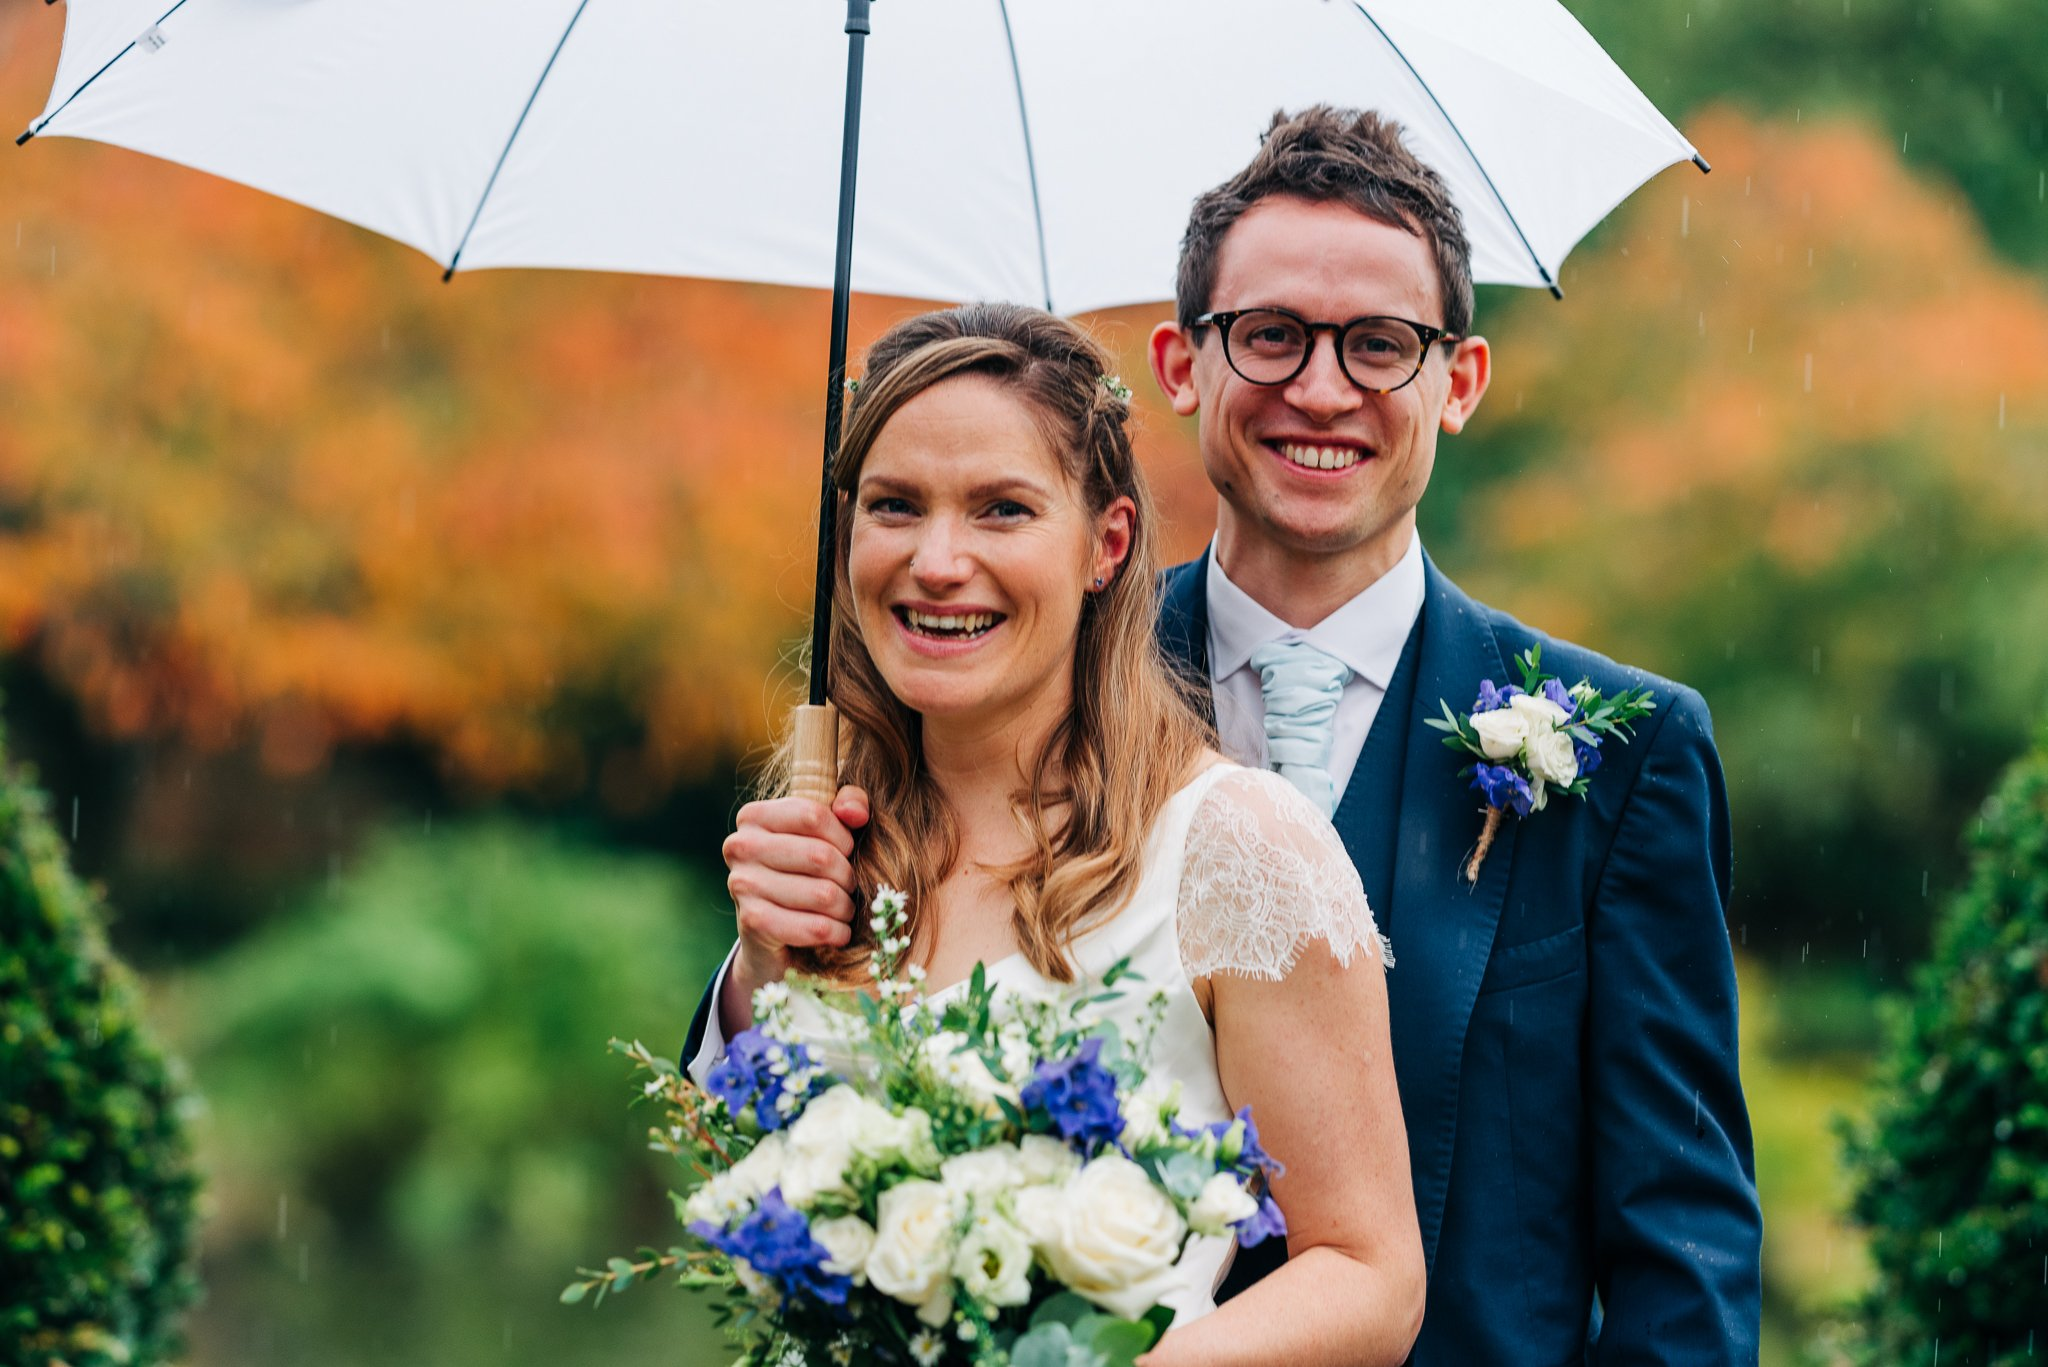 Rainy autumn eco friendly wedding